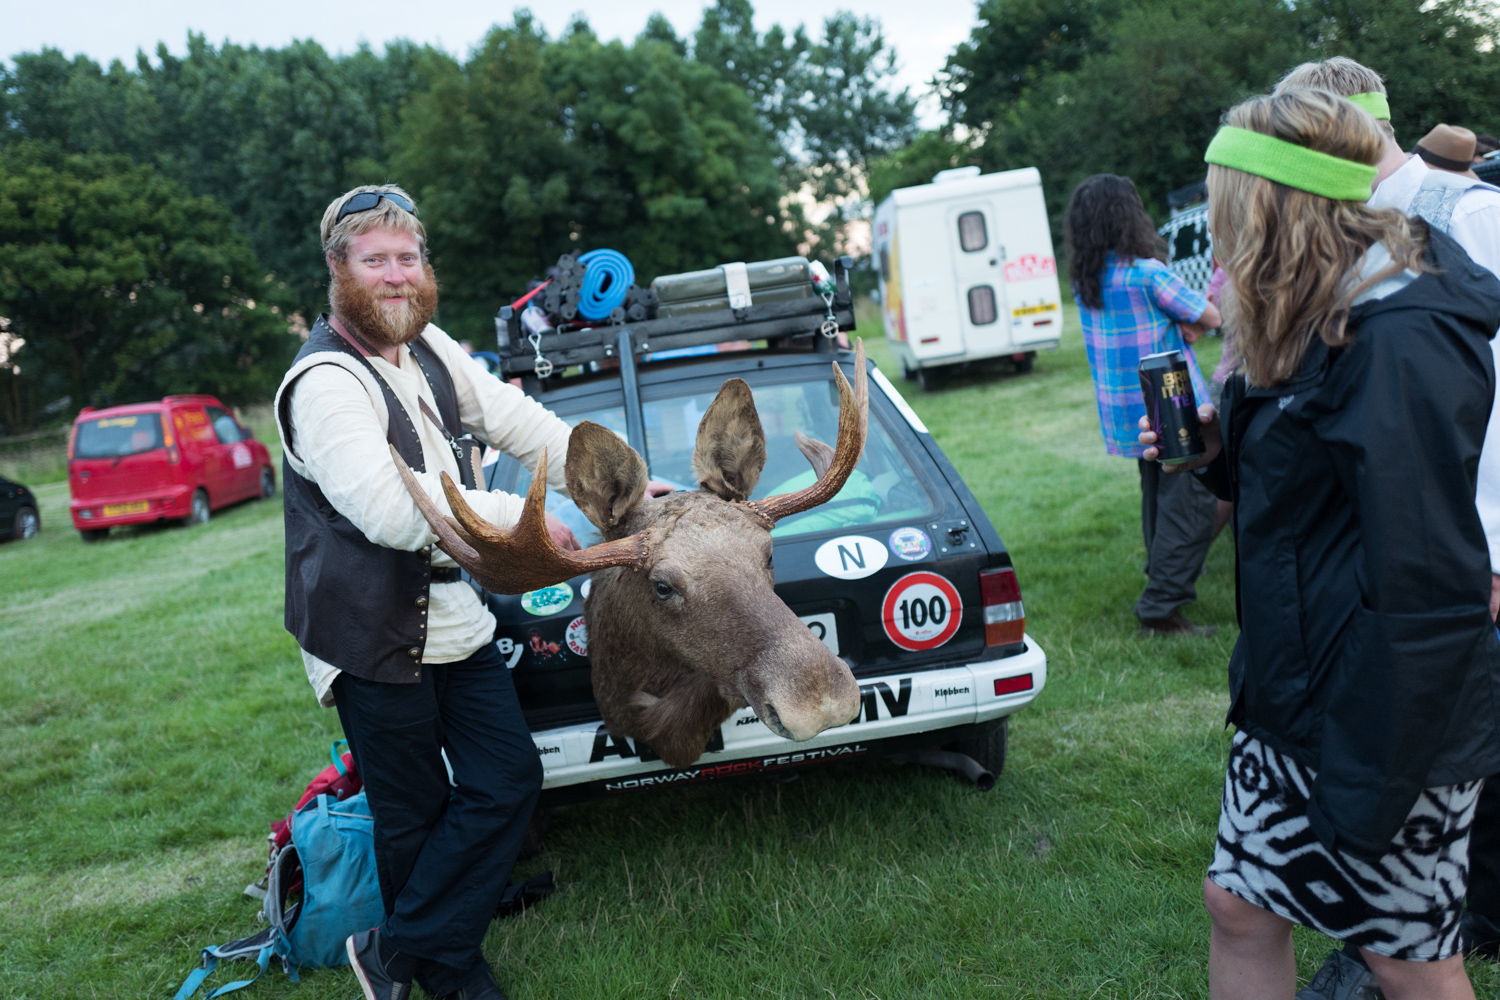 Team Fiesta Vikings drove 1500 km from Norway to the launch with a moose head on the back of their car